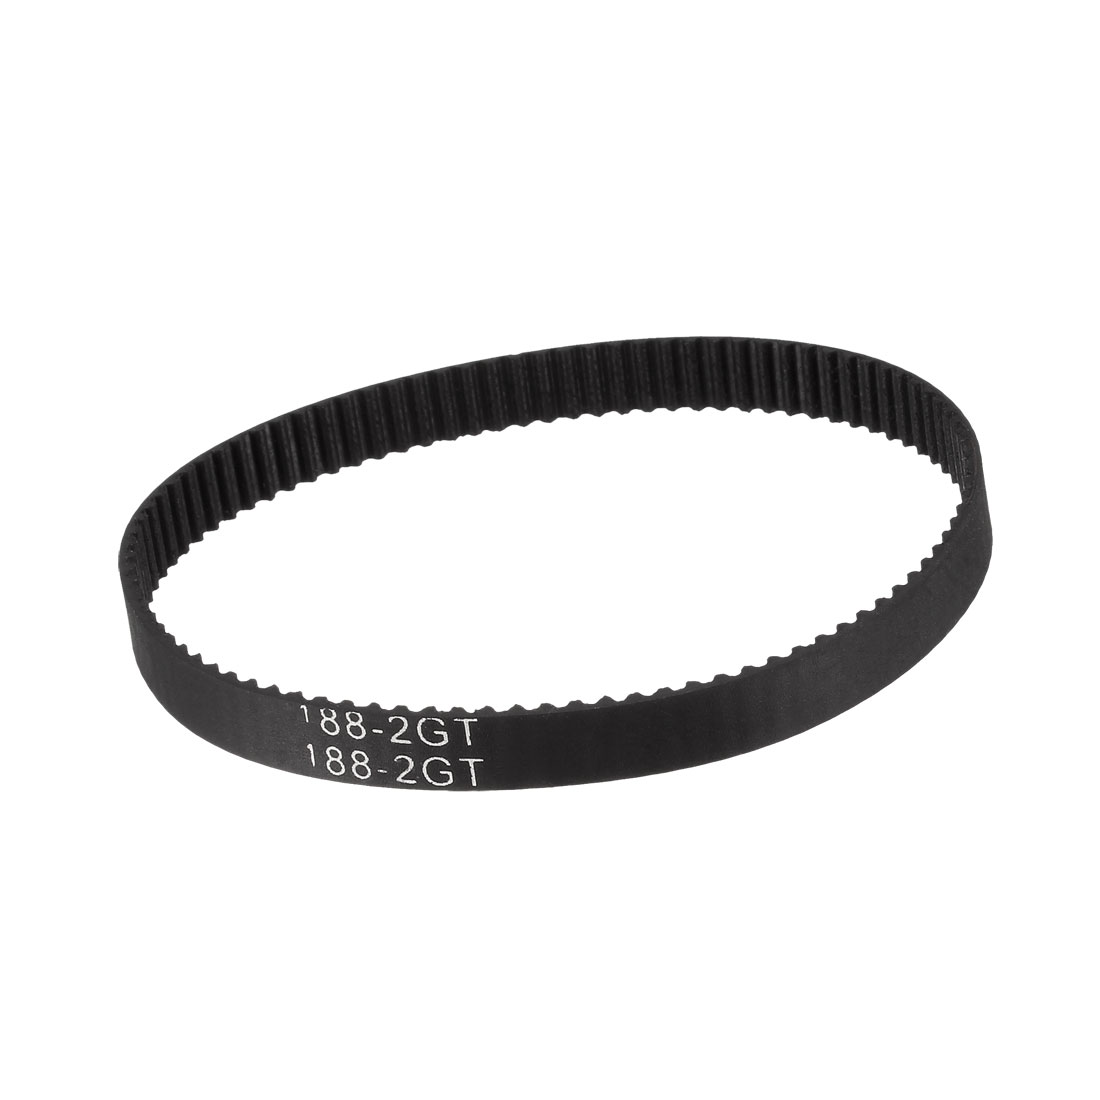 GT2 Timing Belt 188mm Closed Fit Synchronous Wheel for 3D Printer